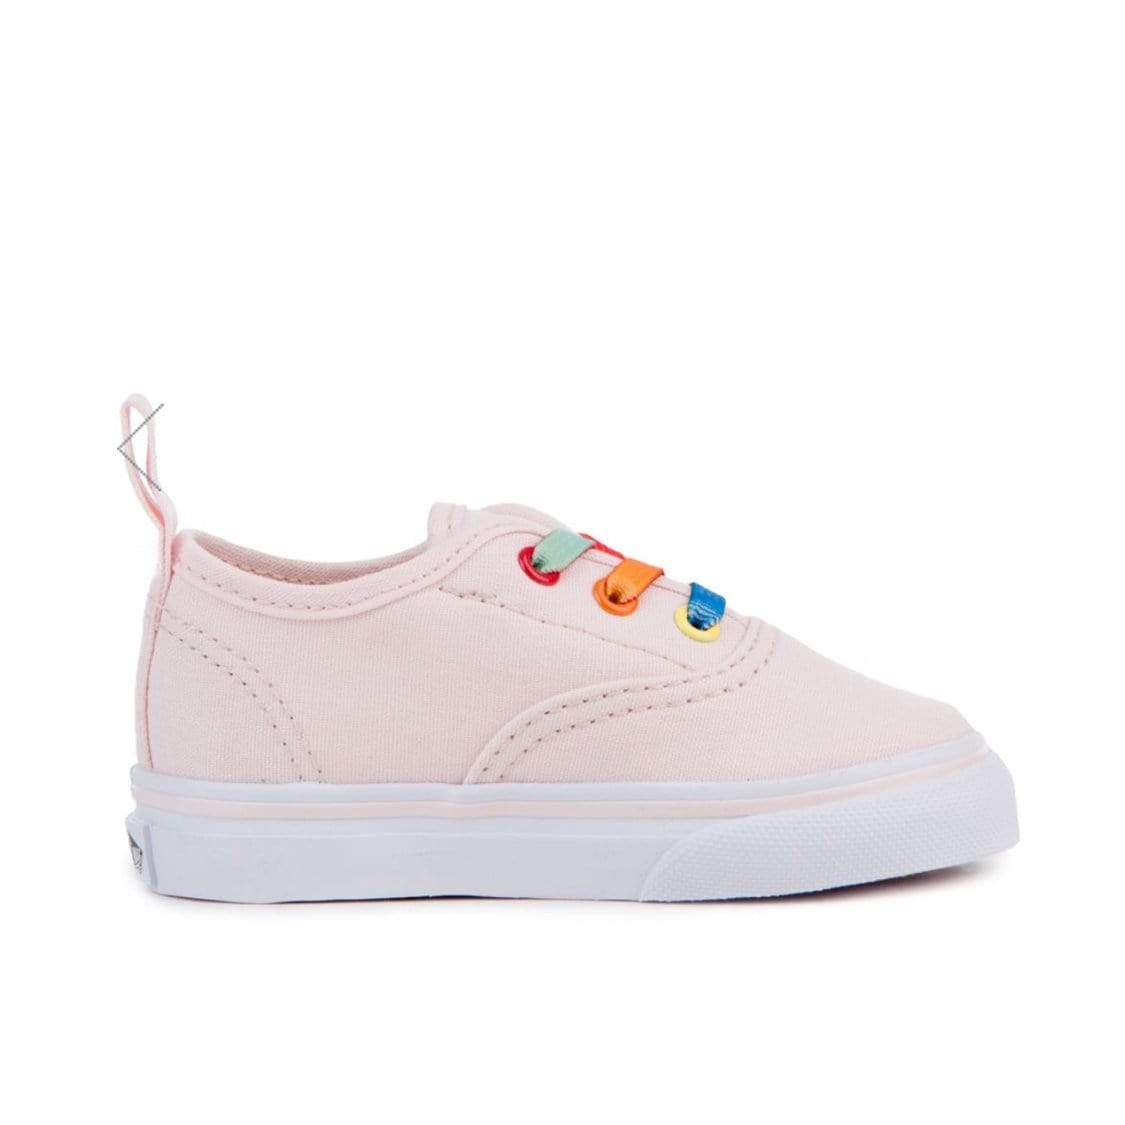 Vans - Rainbow Shine Elastic Slip On Running Shoes (Sizes Kids 10.5 - Youth 3) footwear Vans